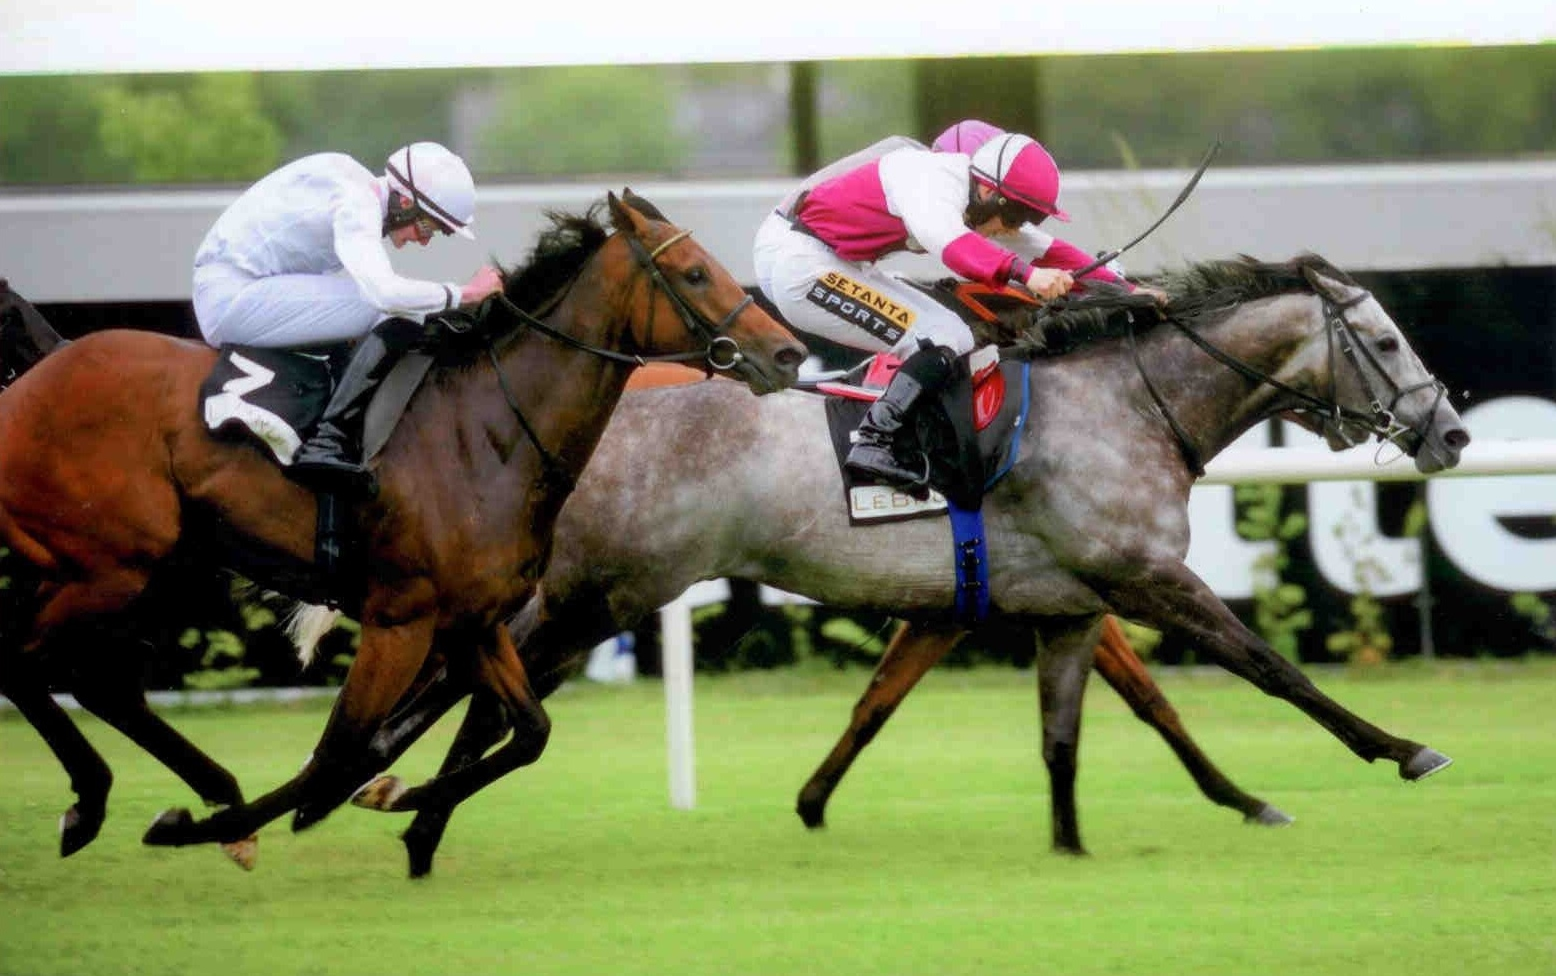 TOCCATA BLUE wins the Le Bruine Handicap at Leopardstown on 2nd July 2015